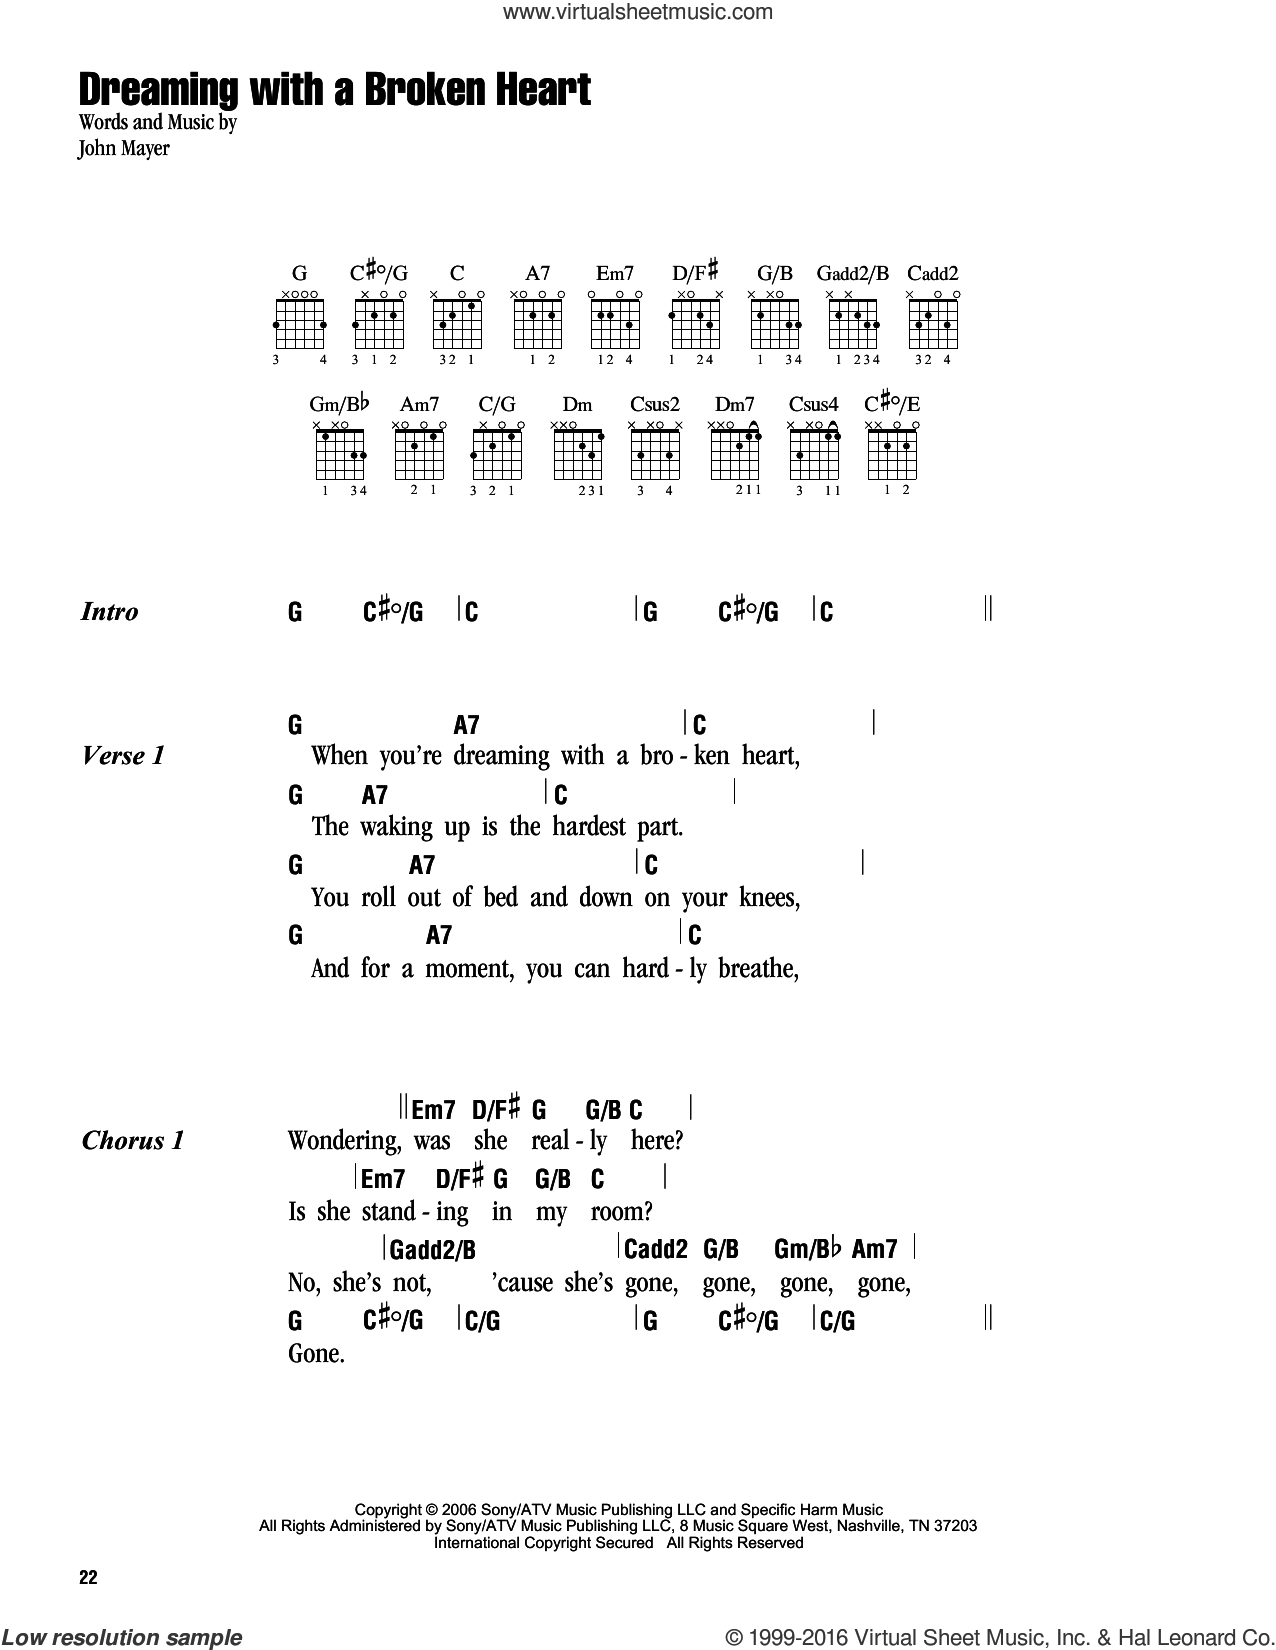 Dreaming With A Broken Heart sheet music for guitar (chords) by John Mayer, intermediate. Score Image Preview.